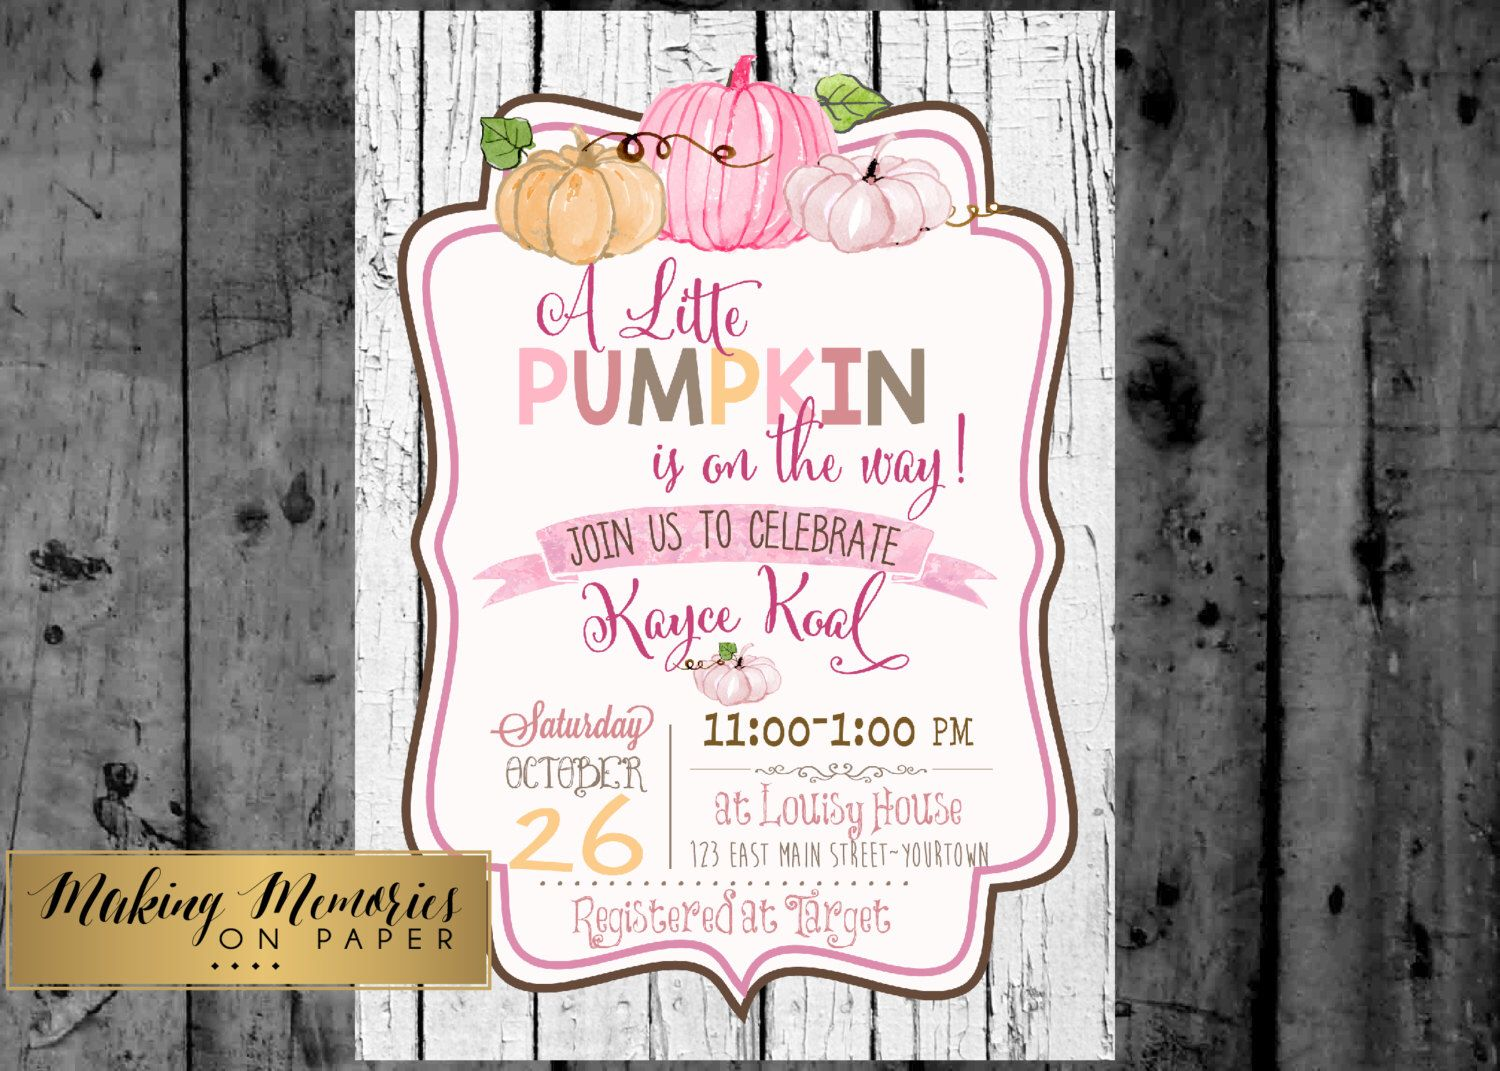 happy birthday invitation pictures%0A Little pumpkin baby shower  watercolor Pumpkin Fall baby shower  Our little  Pumpkin  First Birthday Invitation